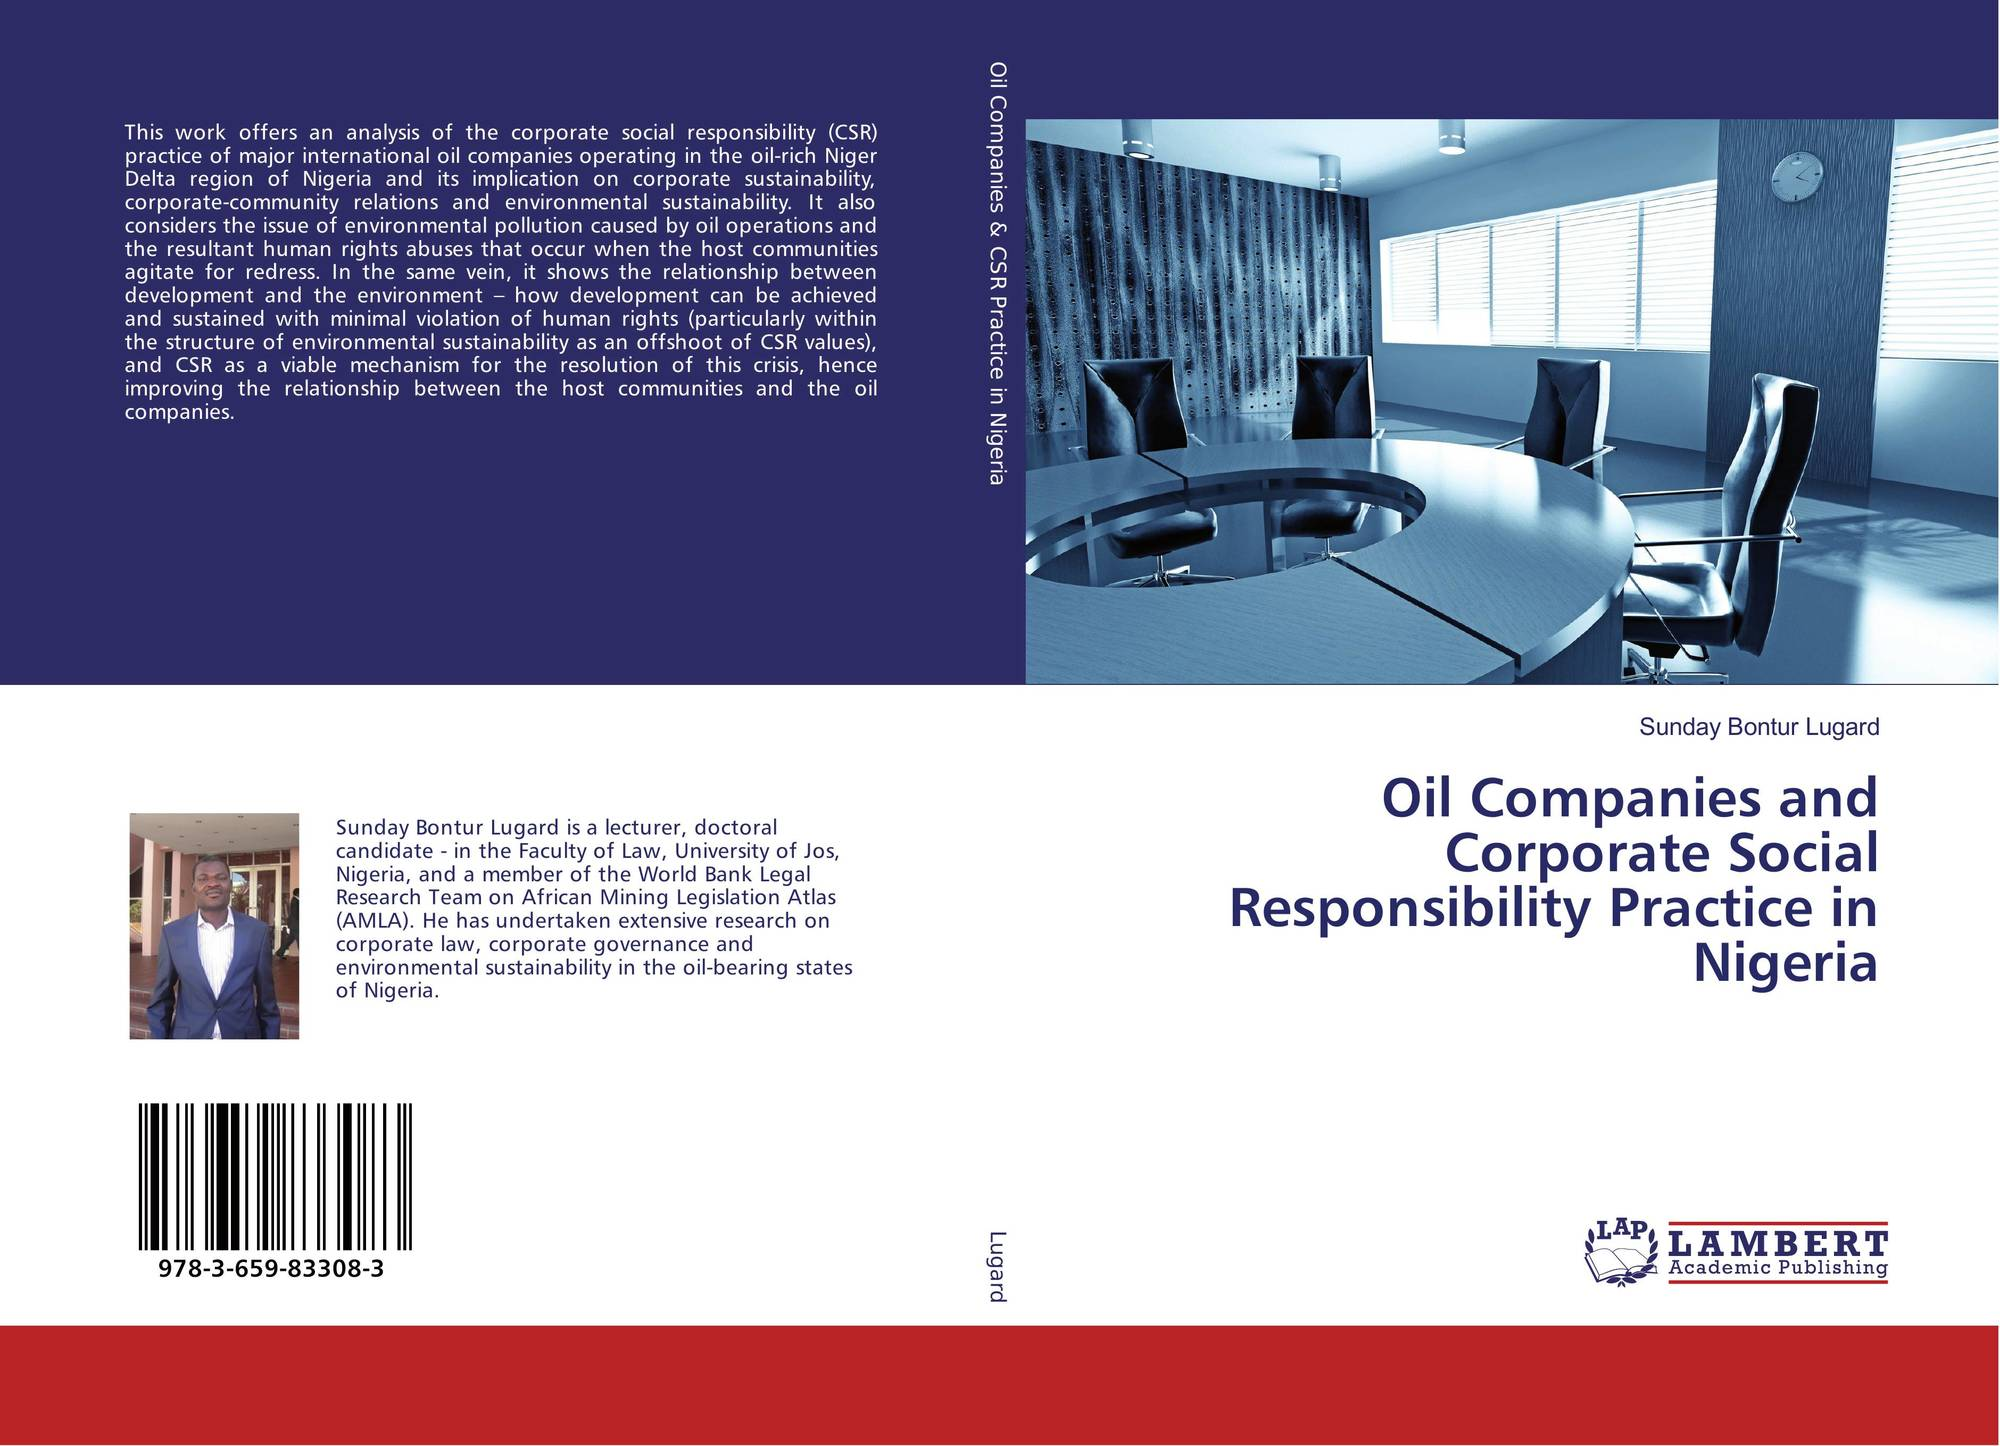 thesis on csr in nigeria Chicago-kent law review volume 86 issue 1symposium on energy law article 4 december 2010 corporate social responsibility in the oil and gas industry: the importance.